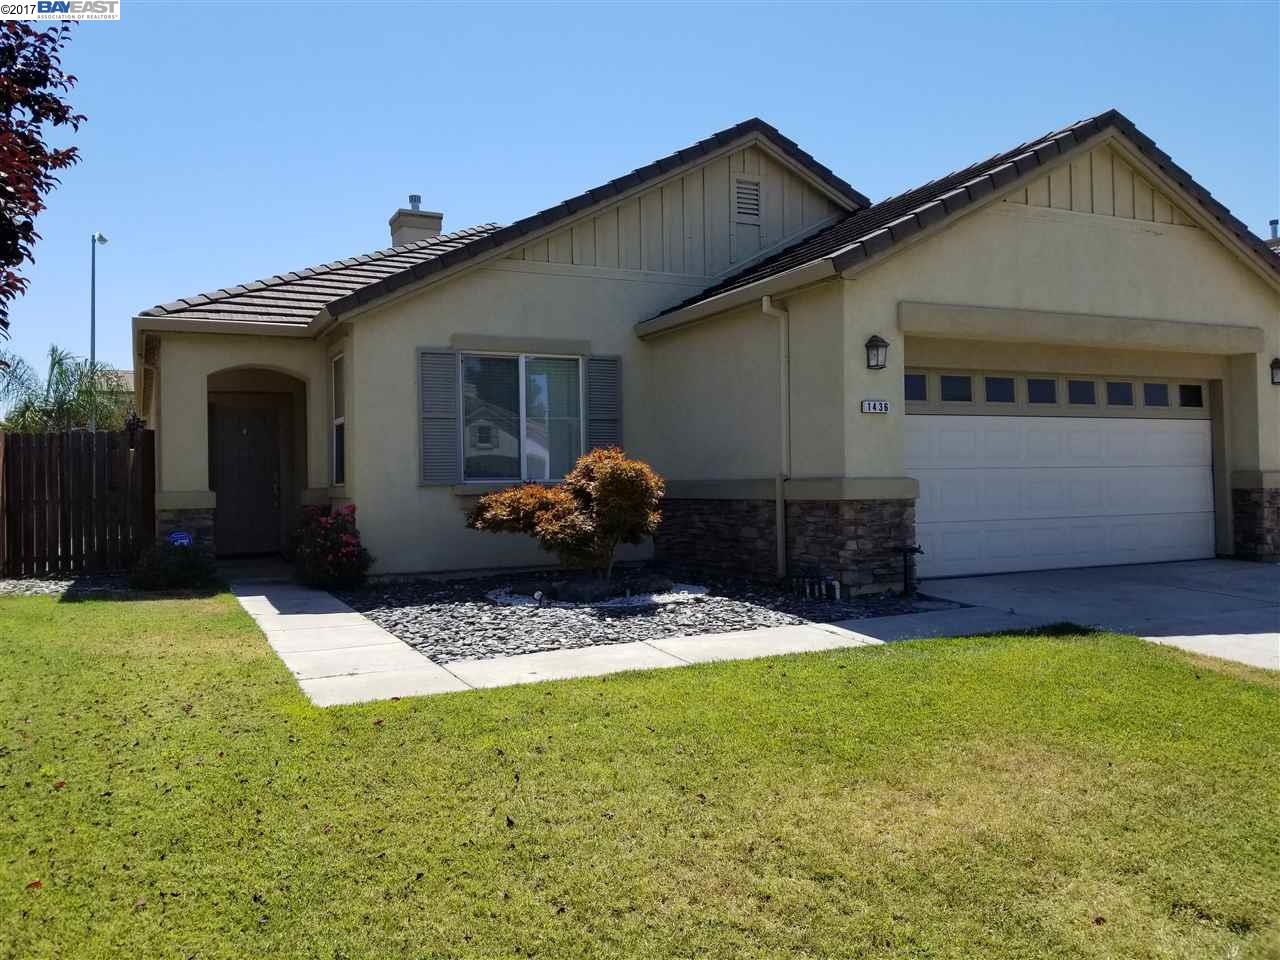 Additional photo for property listing at 1436 Garold Lane 1436 Garold Lane Manteca, Kalifornien 95377 Vereinigte Staaten